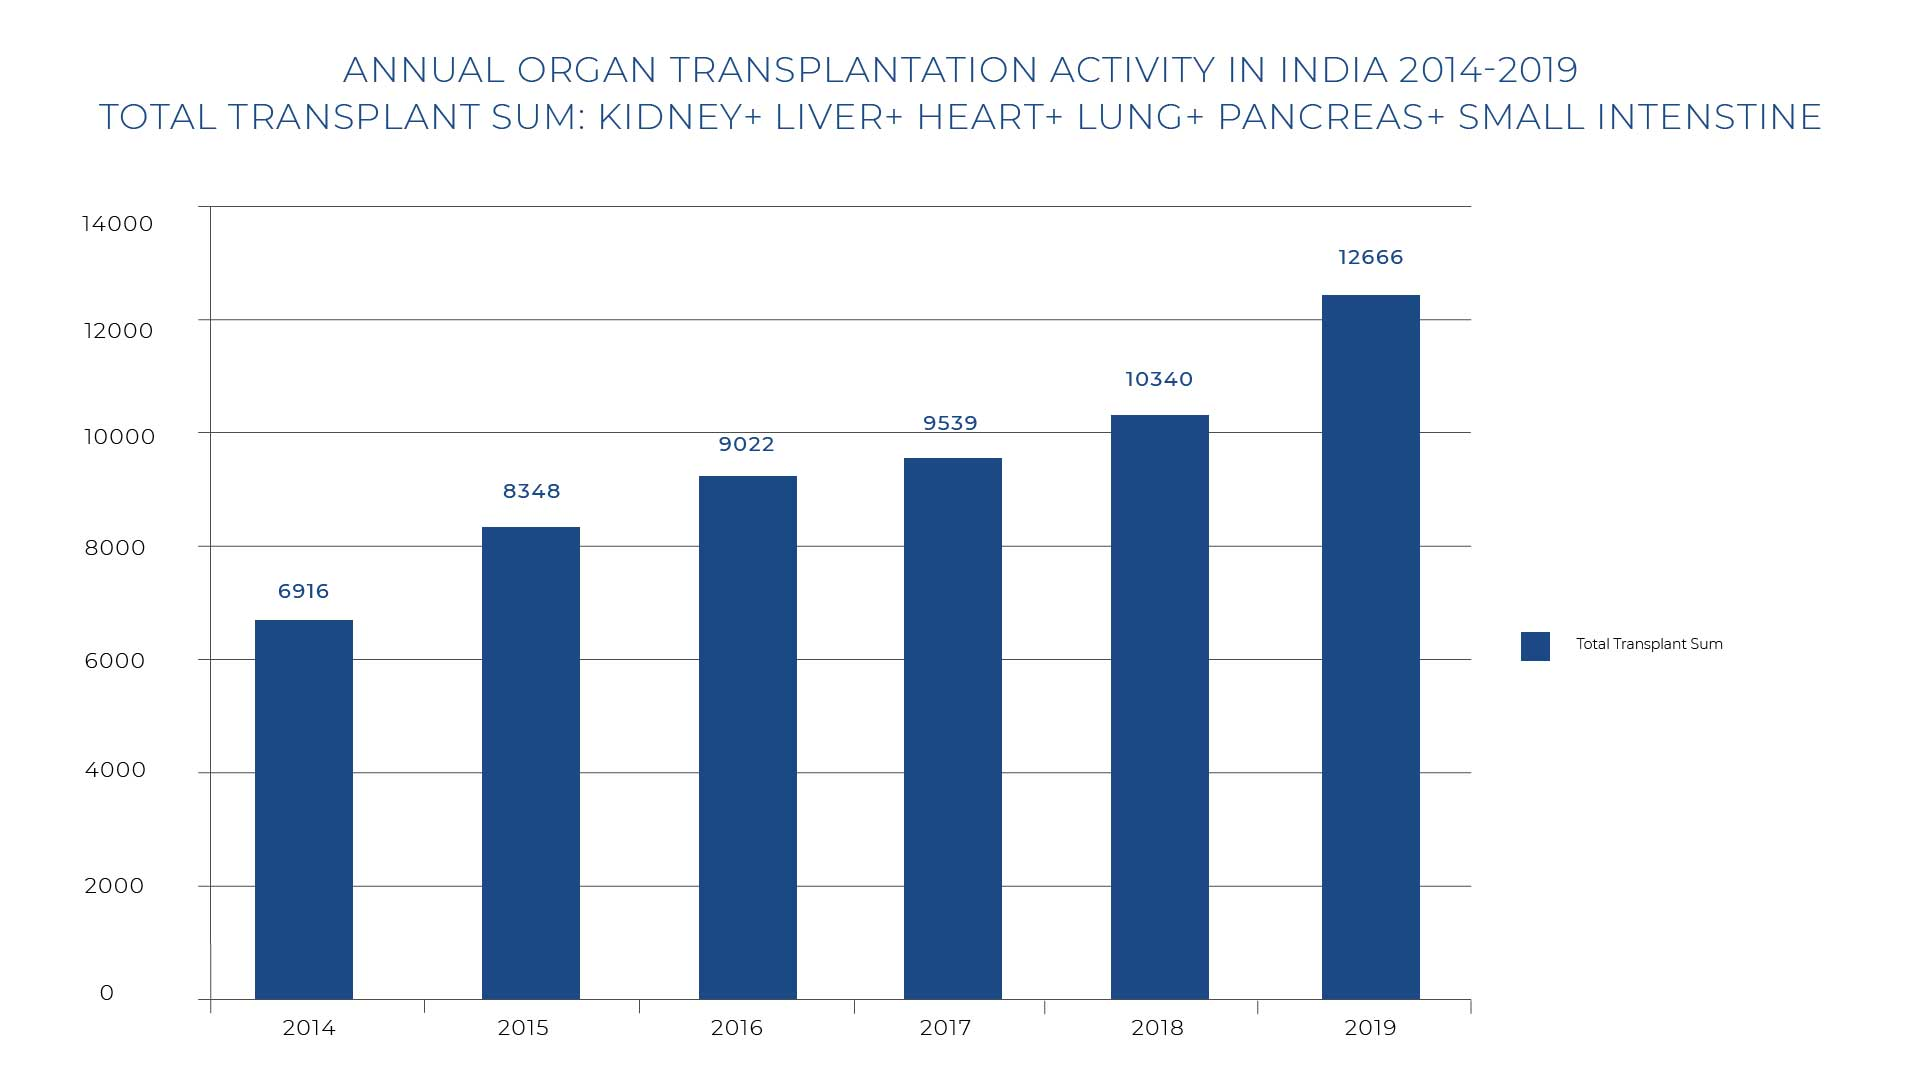 Annual Organ Transplantation Activity